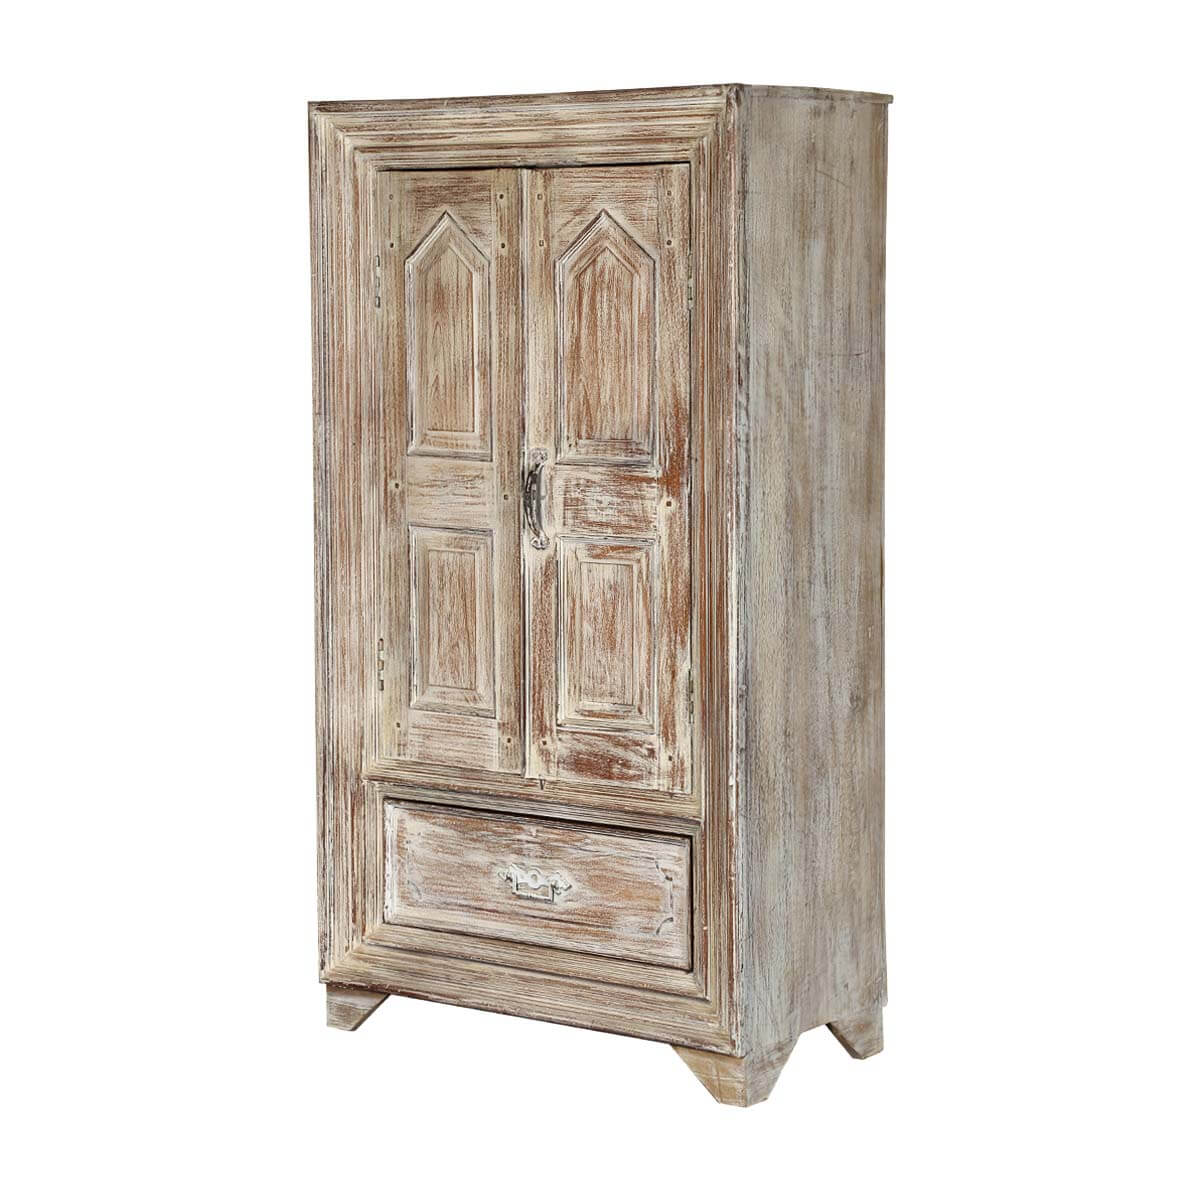 Parral Distress Rustic Solid Wood Single Drawer Armoire